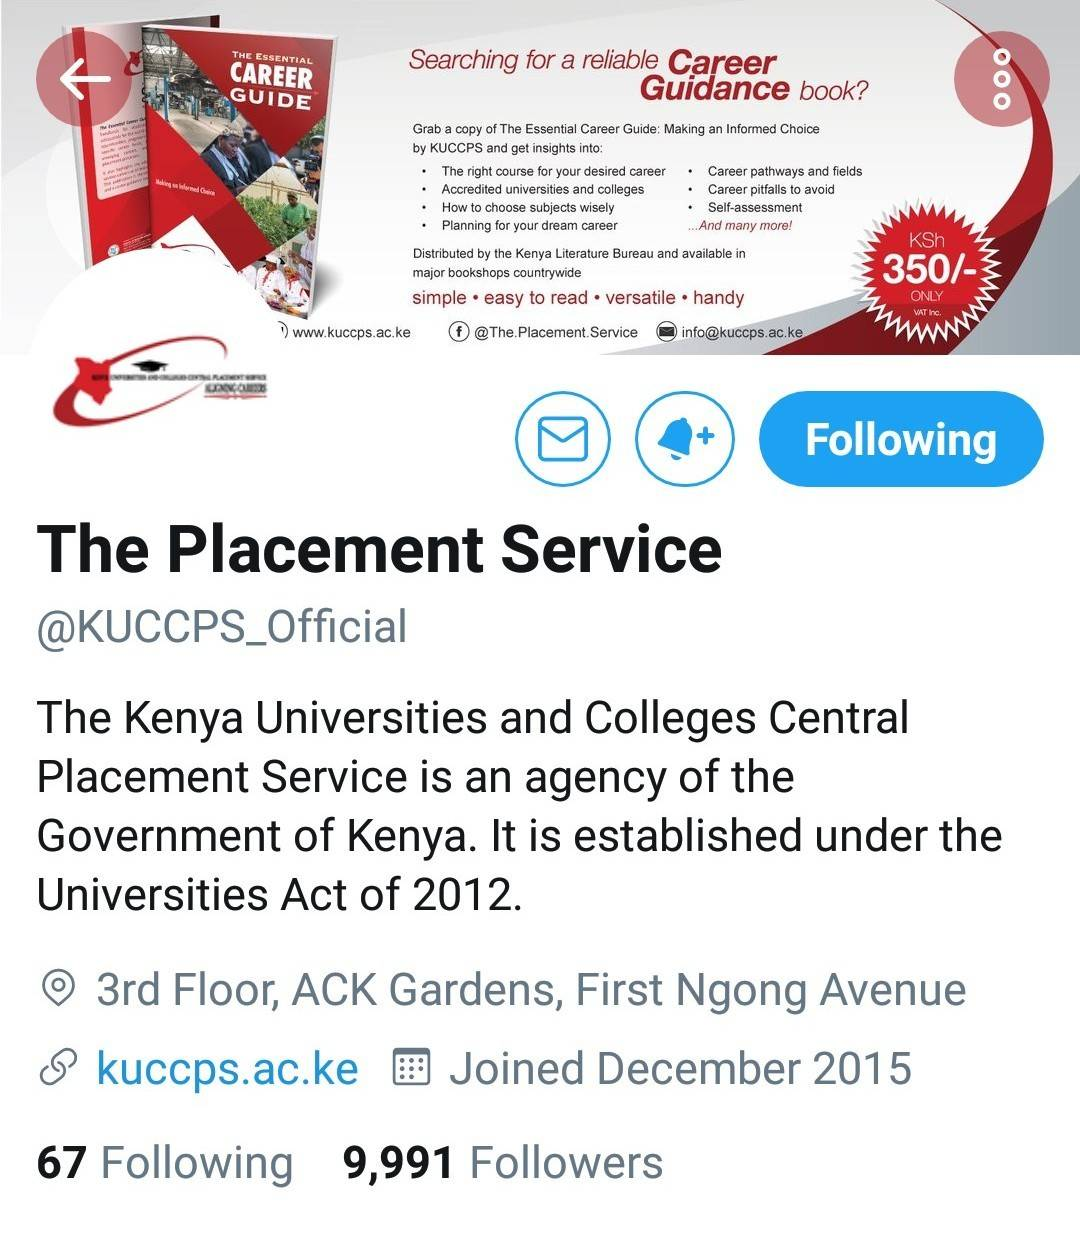 Official KUCCPS twitter account.